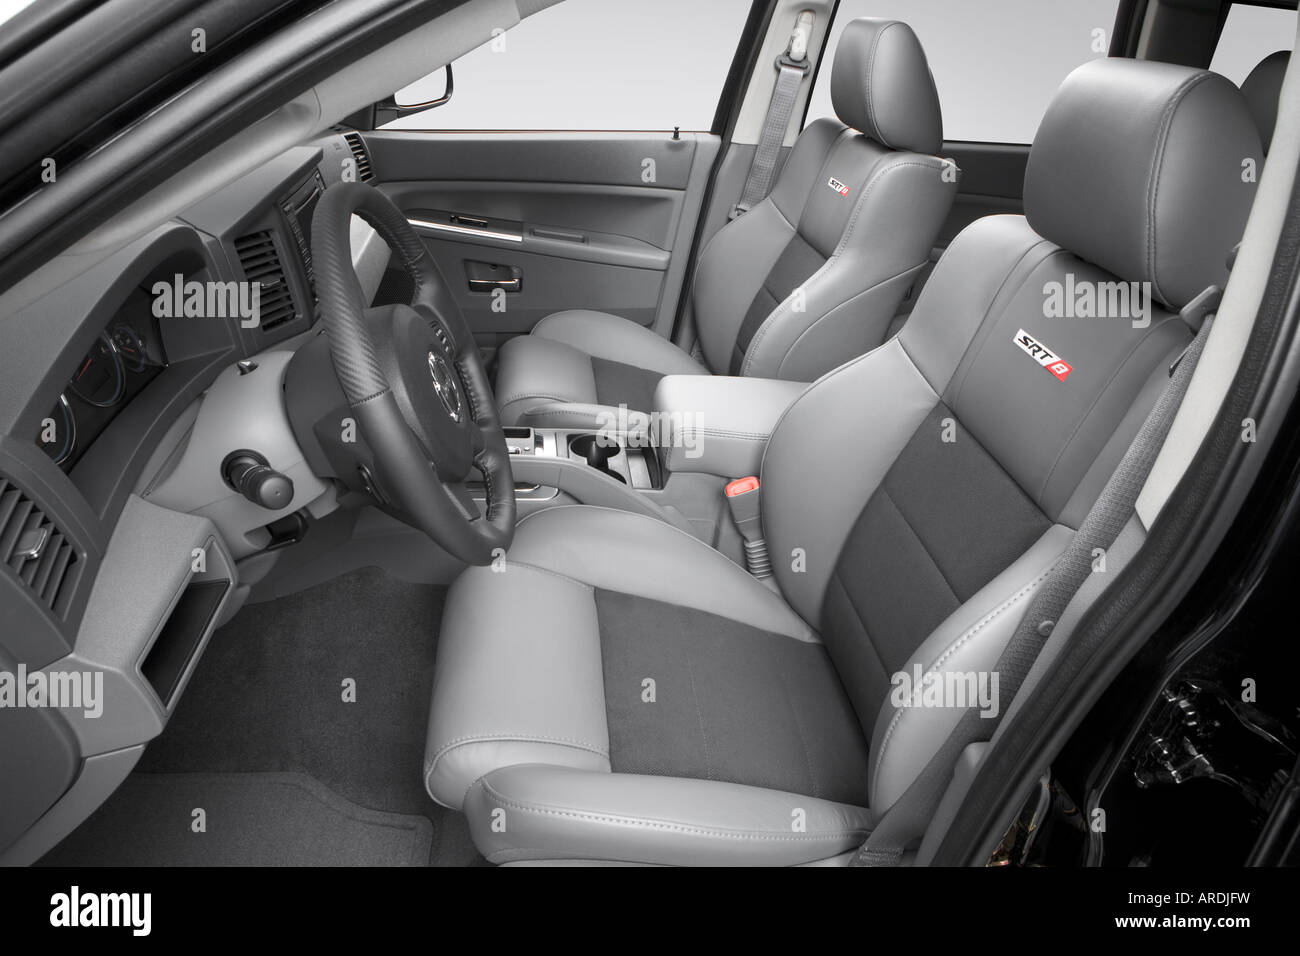 2006 Jeep Grand Cherokee Srt8 In Black Front Seats Stock Photo Alamy